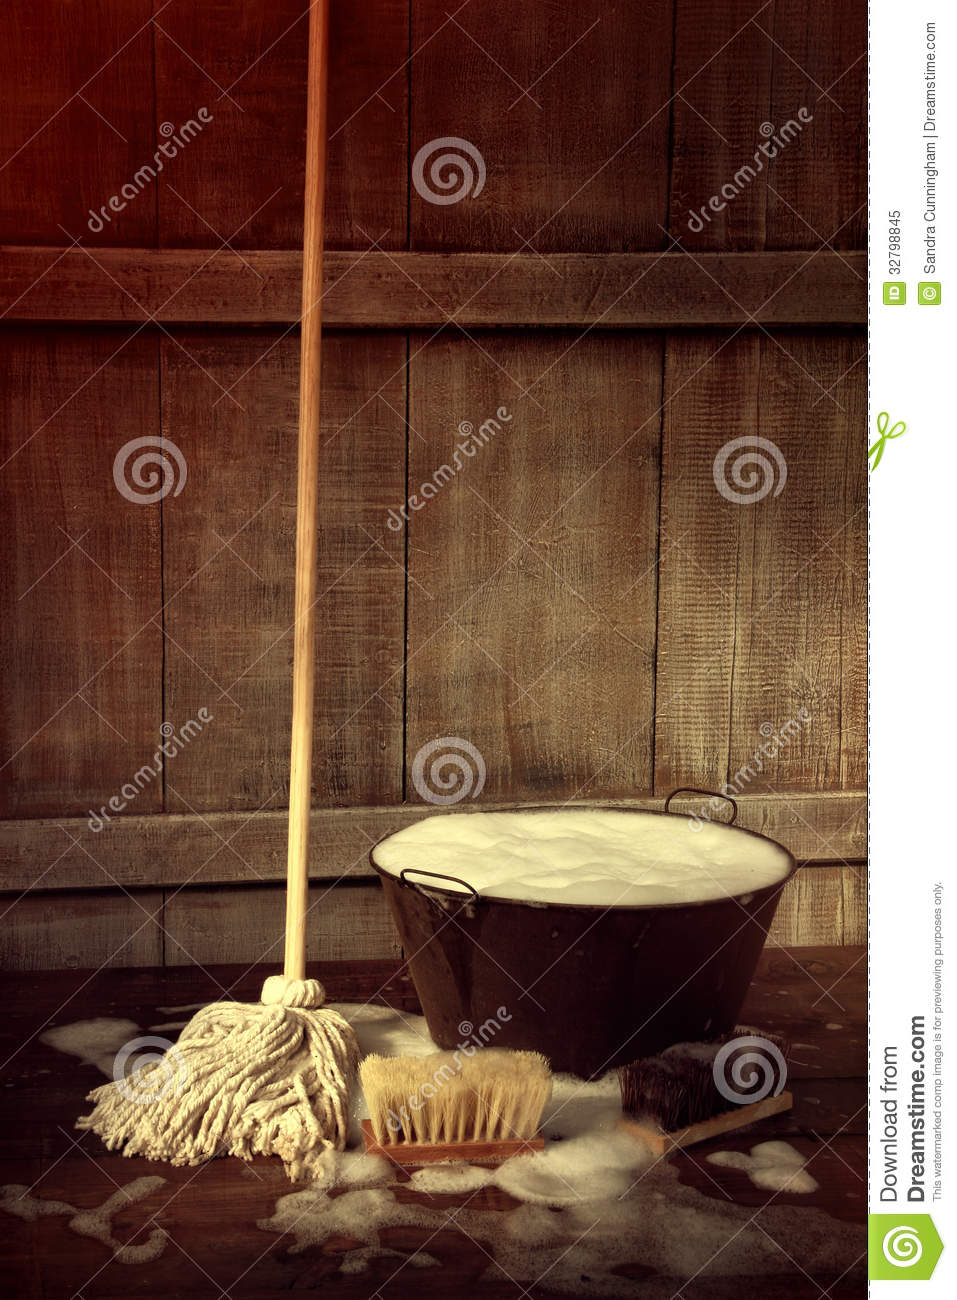 Mop And Bucket With Wet Soapy Floor Royalty Free Stock